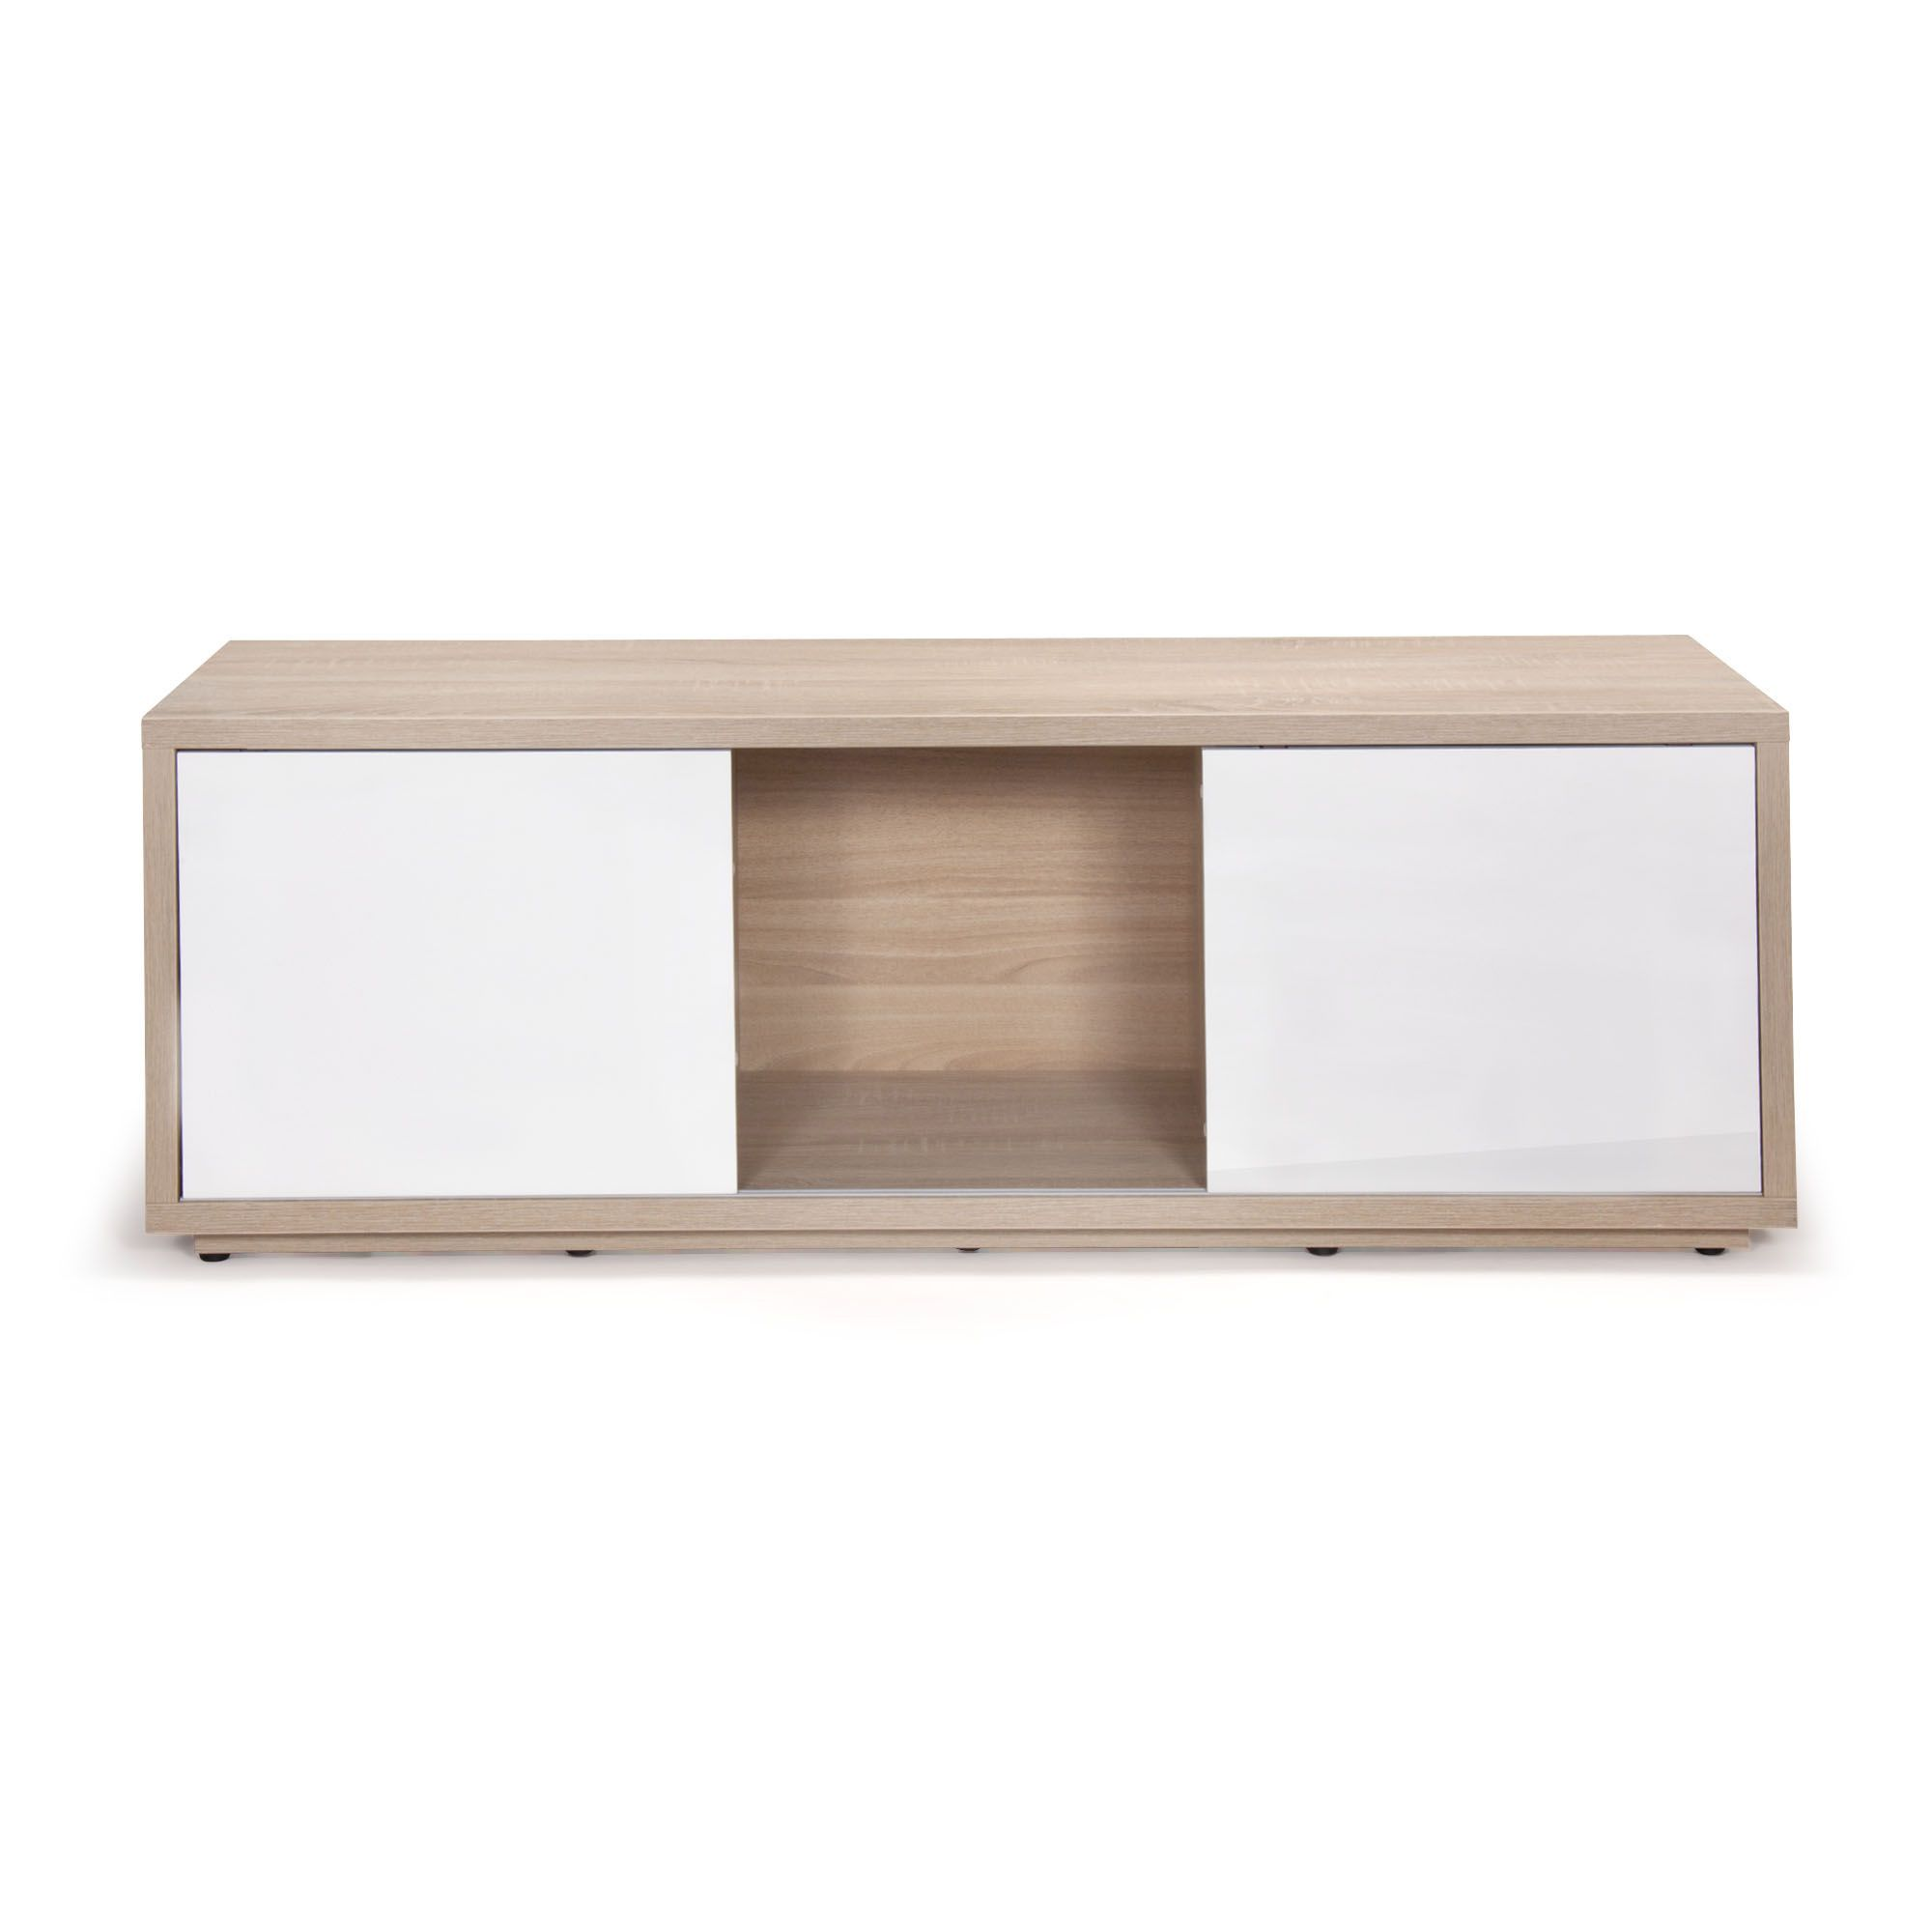 Meuble Tv Design Scandinave Chene Blanc Checker Meuble Meuble Tv Design Meuble